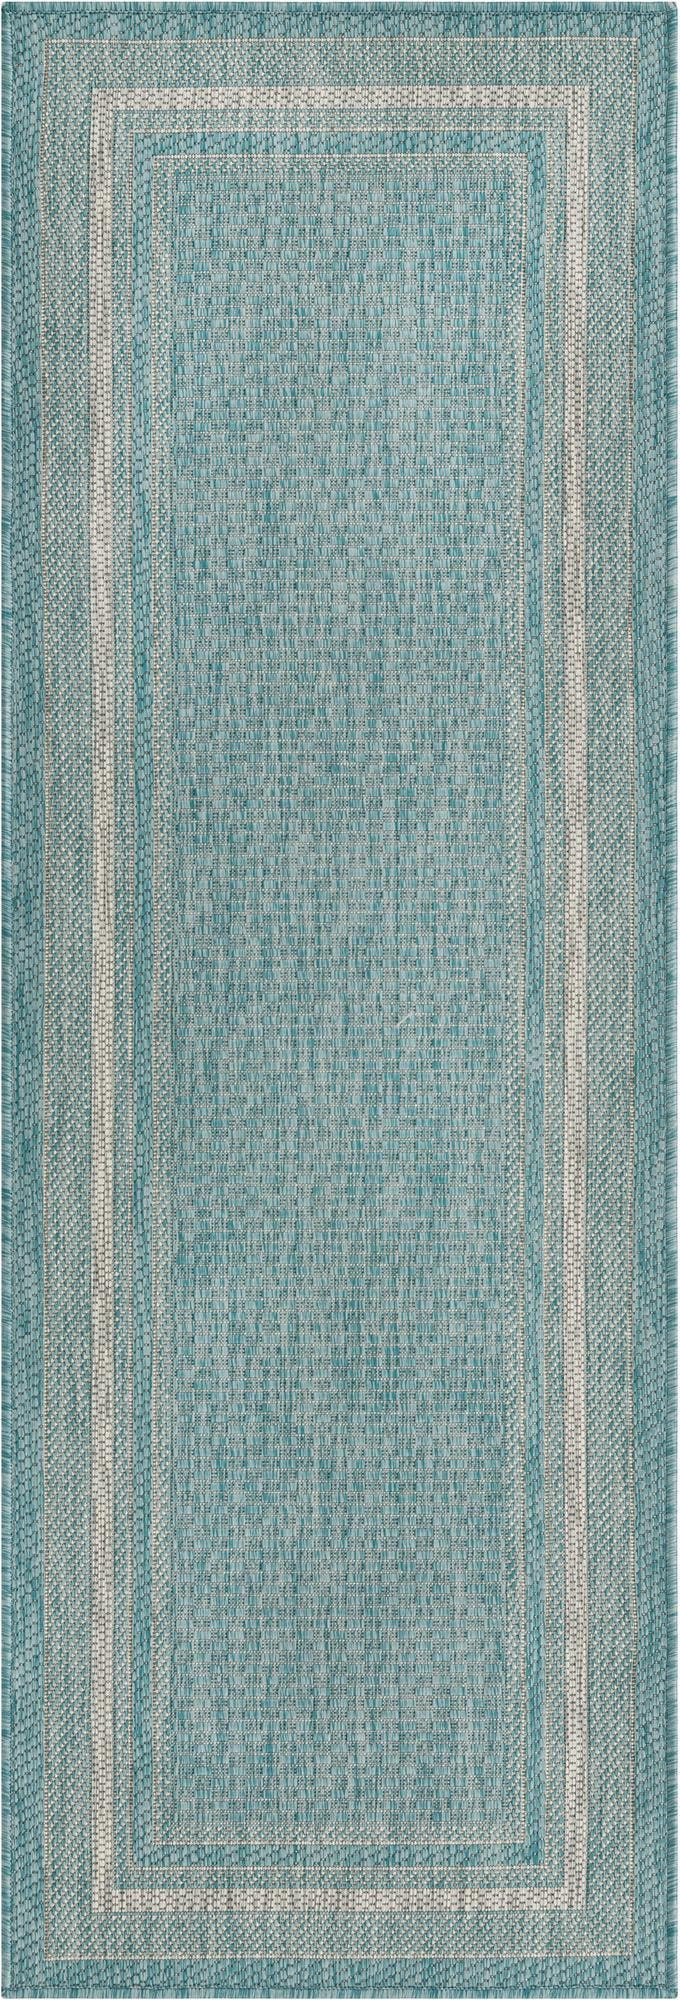 Aquamarine  2' x 6' Outdoor Border Runner